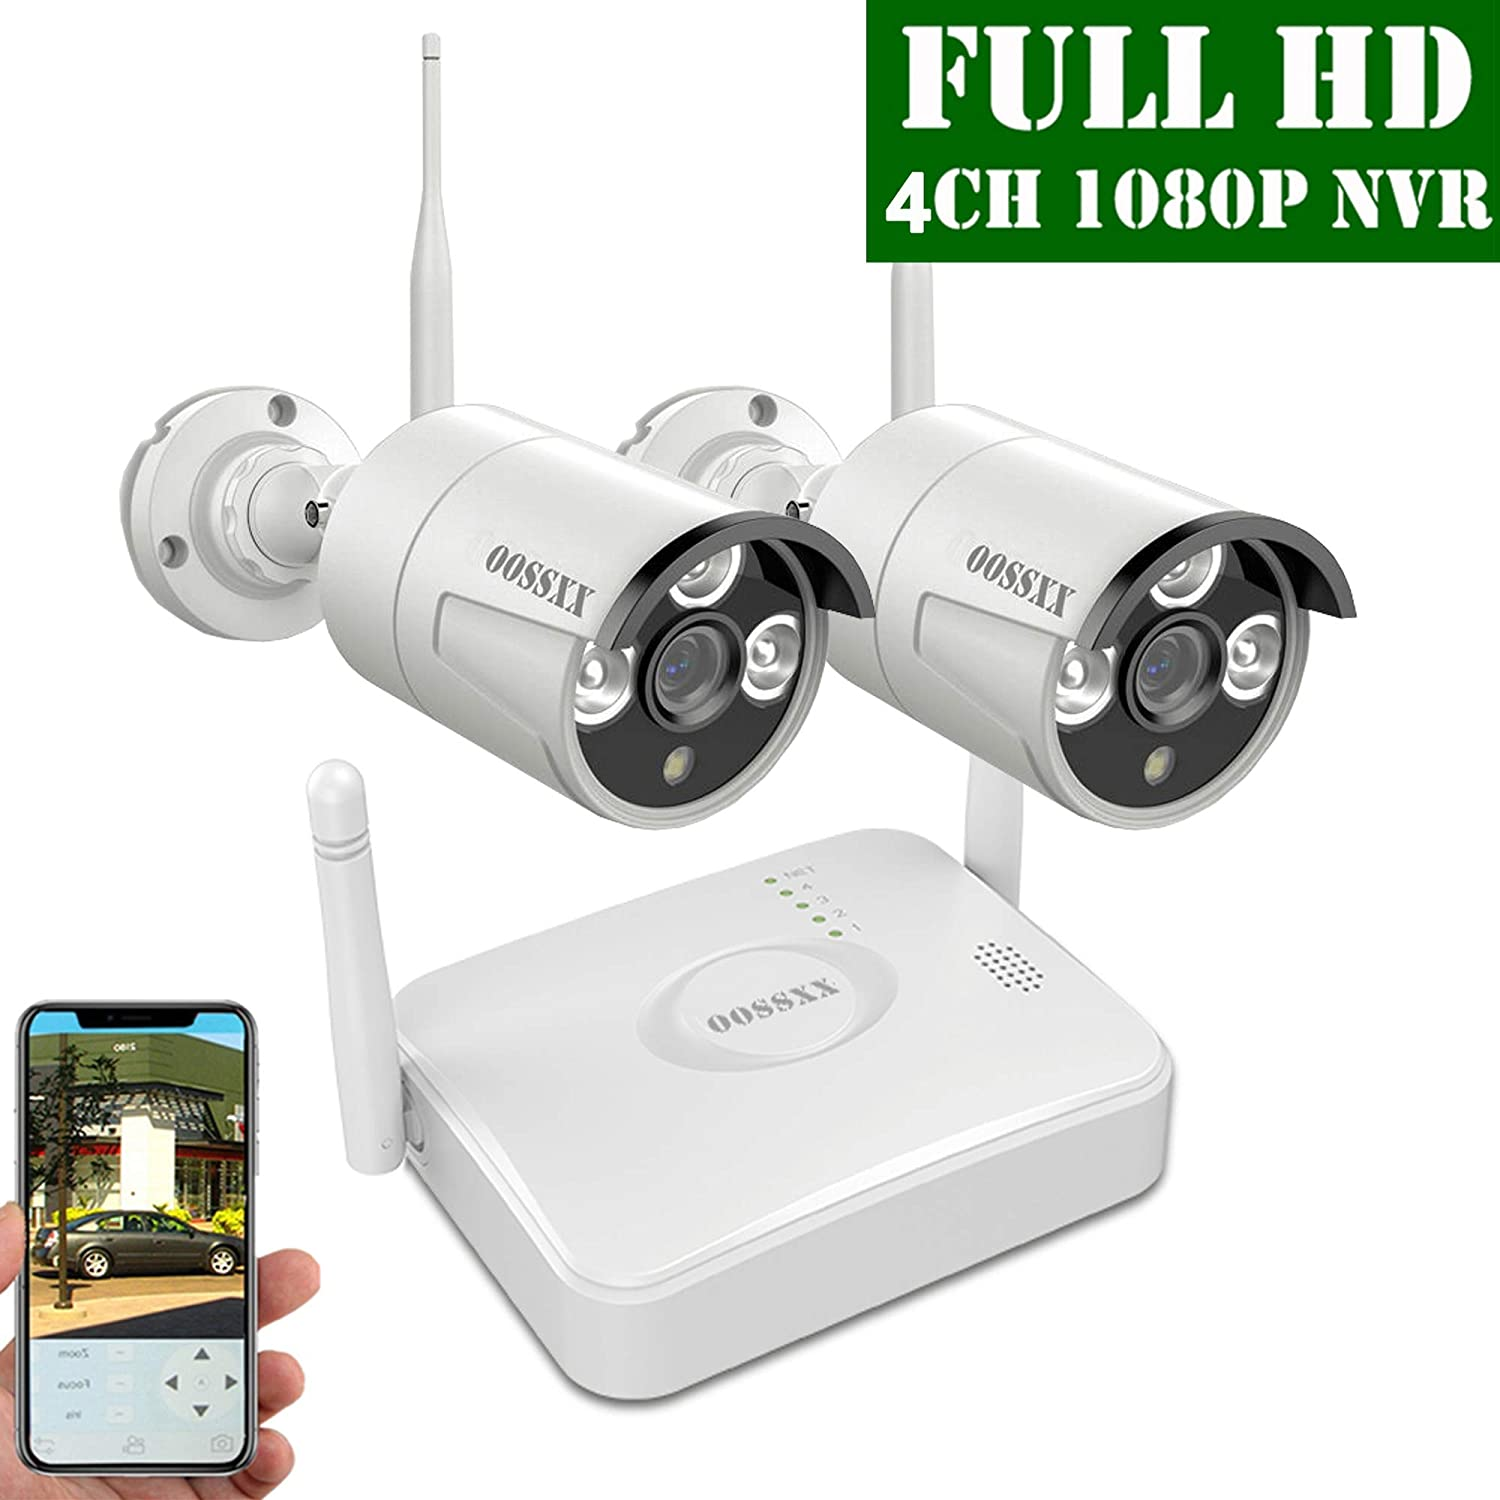 2019 Update OOSSXX 4-Channel HD 1080P Wireless Mini Security Camera System,2Pcs 1080P Wireless Indoor Outdoor IR Bullet IP Cameras,No HDD